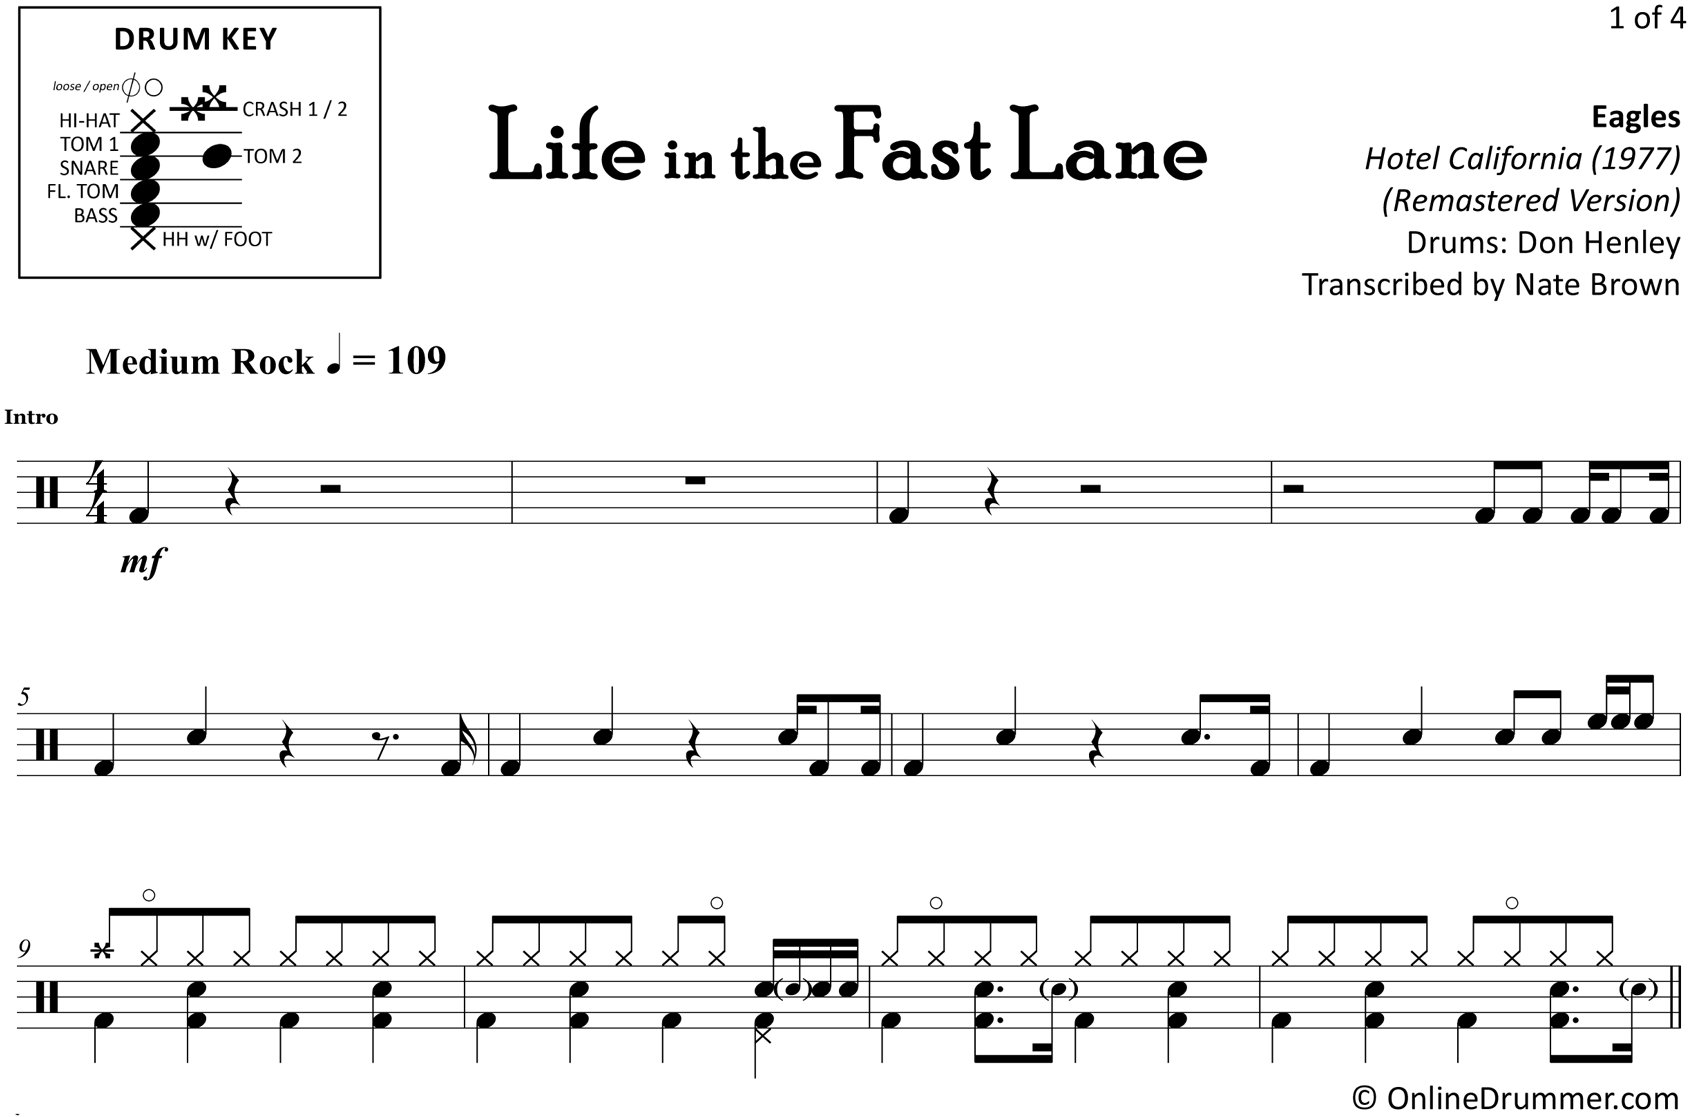 Life in the Fast Lane - Eagles - Drum Sheet Music